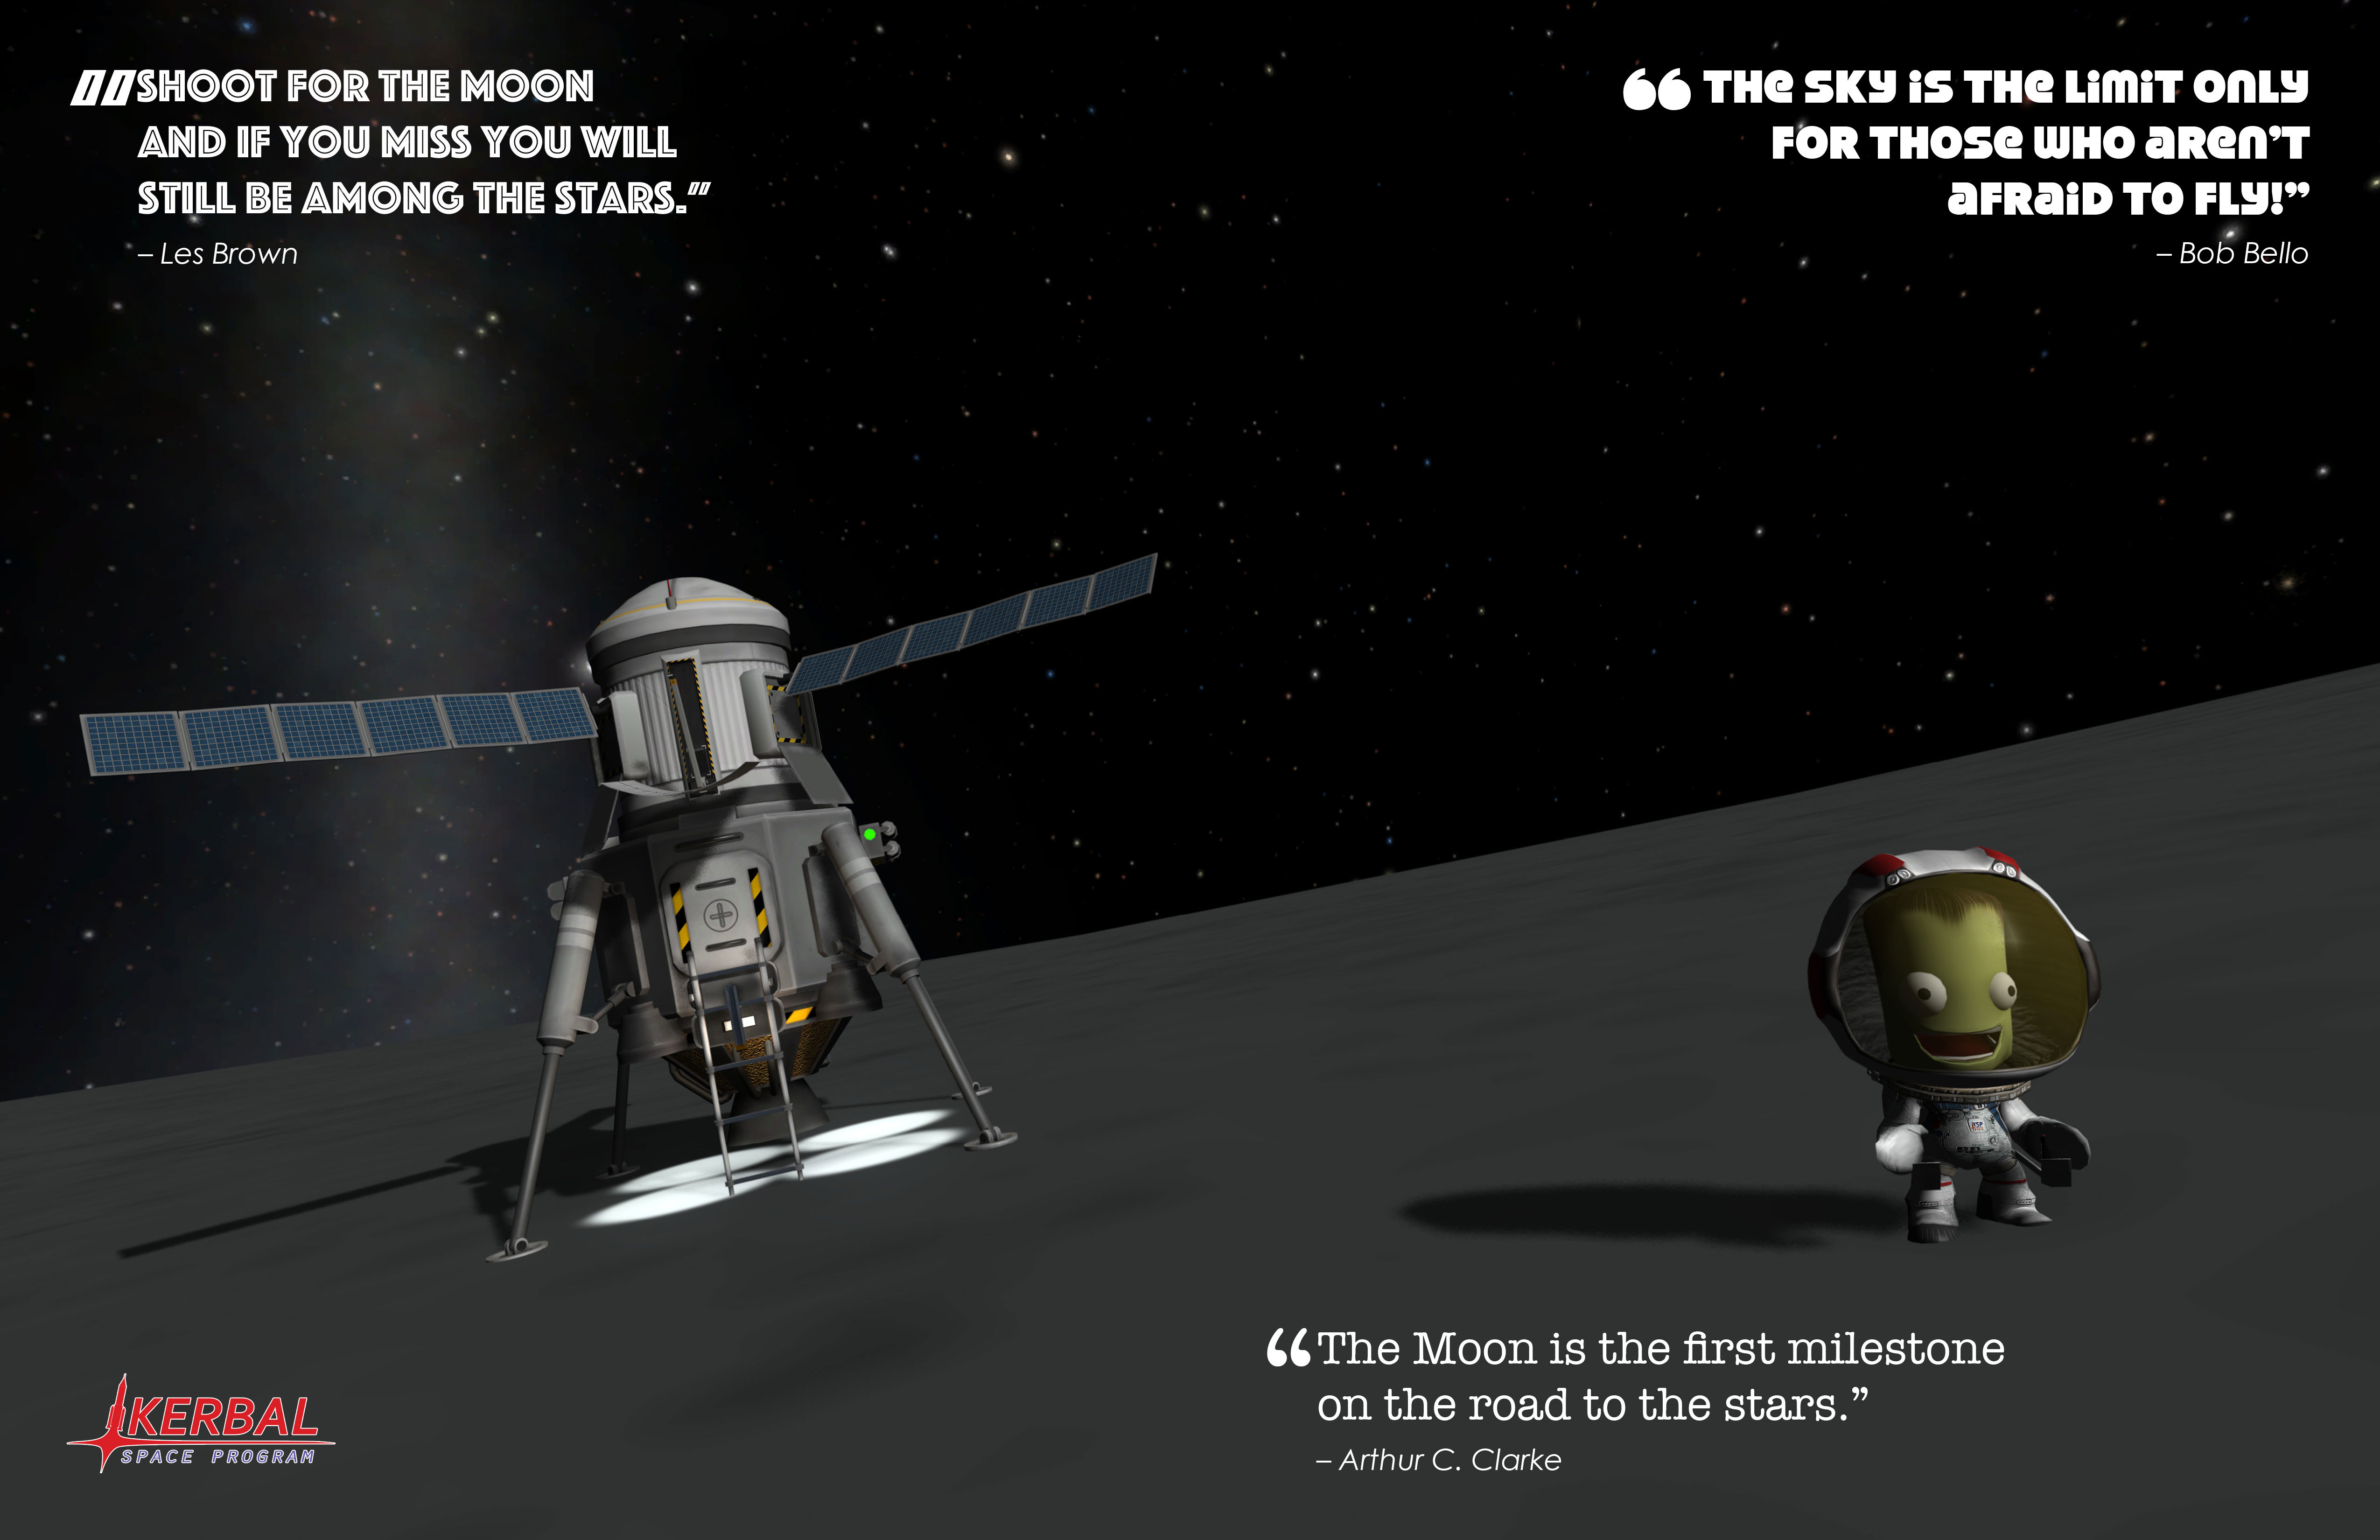 kerbal space program moon - photo #22